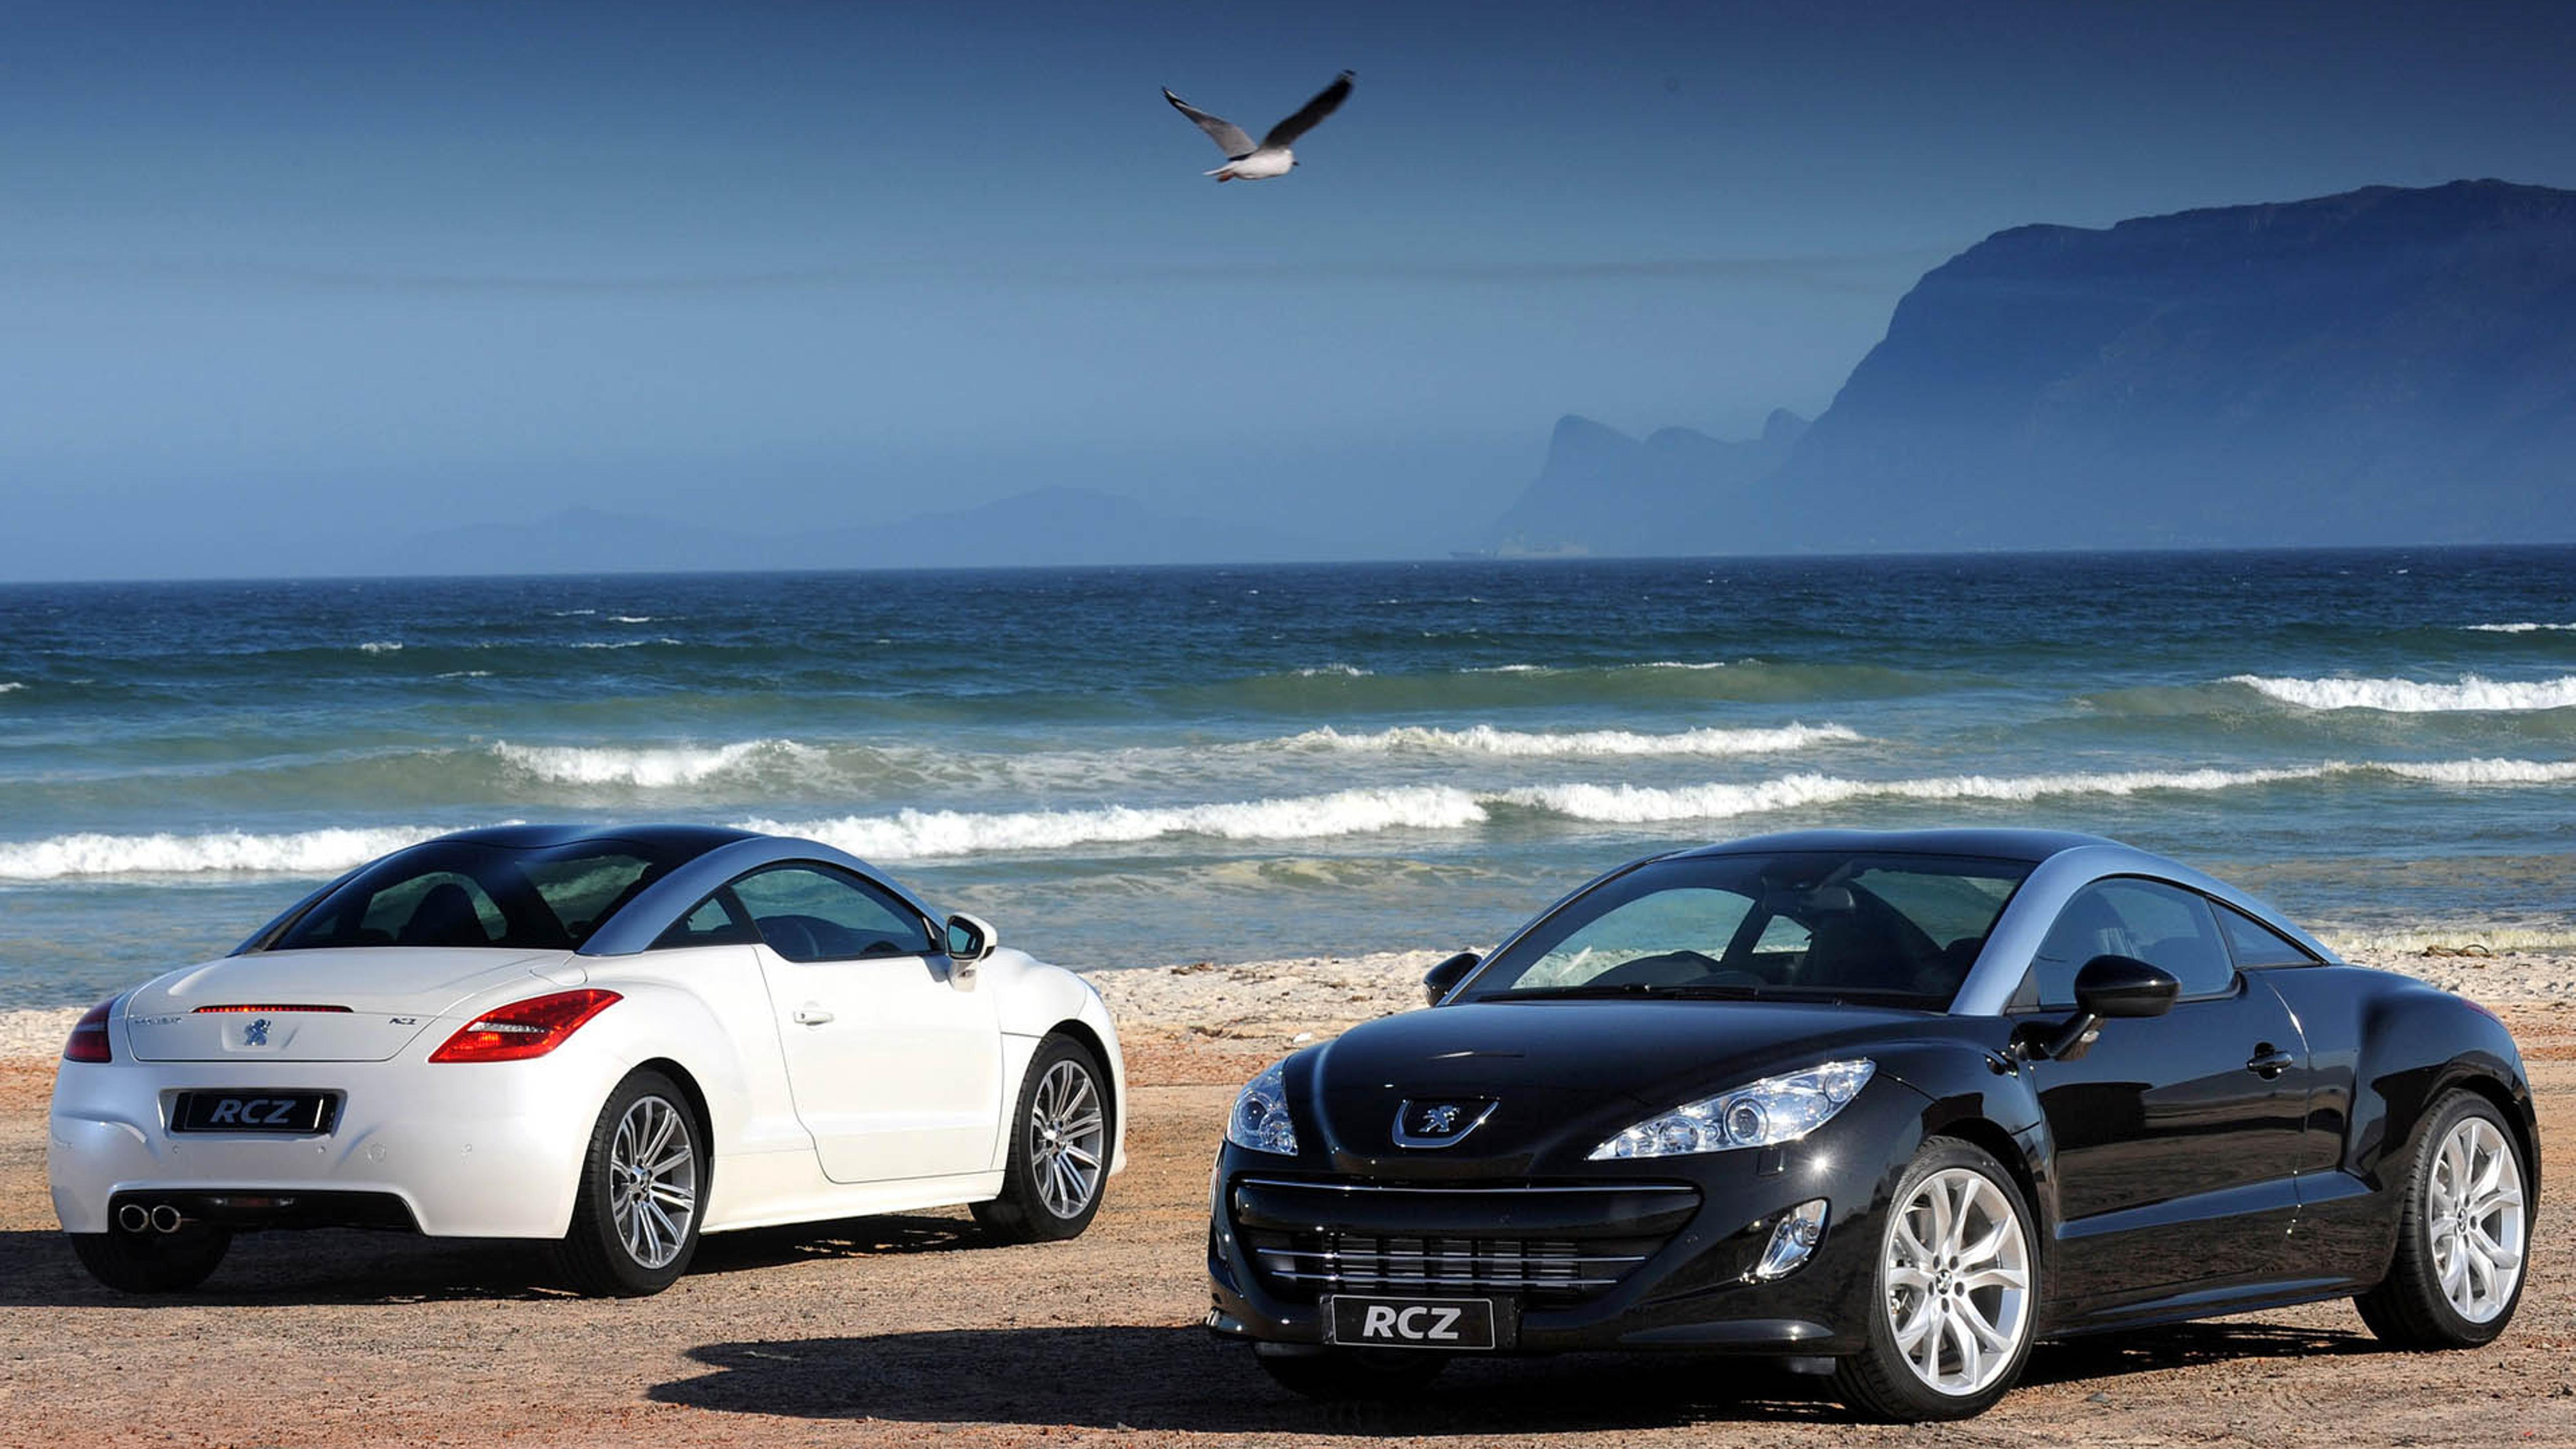 Two Peugeot Rcz On The Beach Wallpaper Download 5120x2880